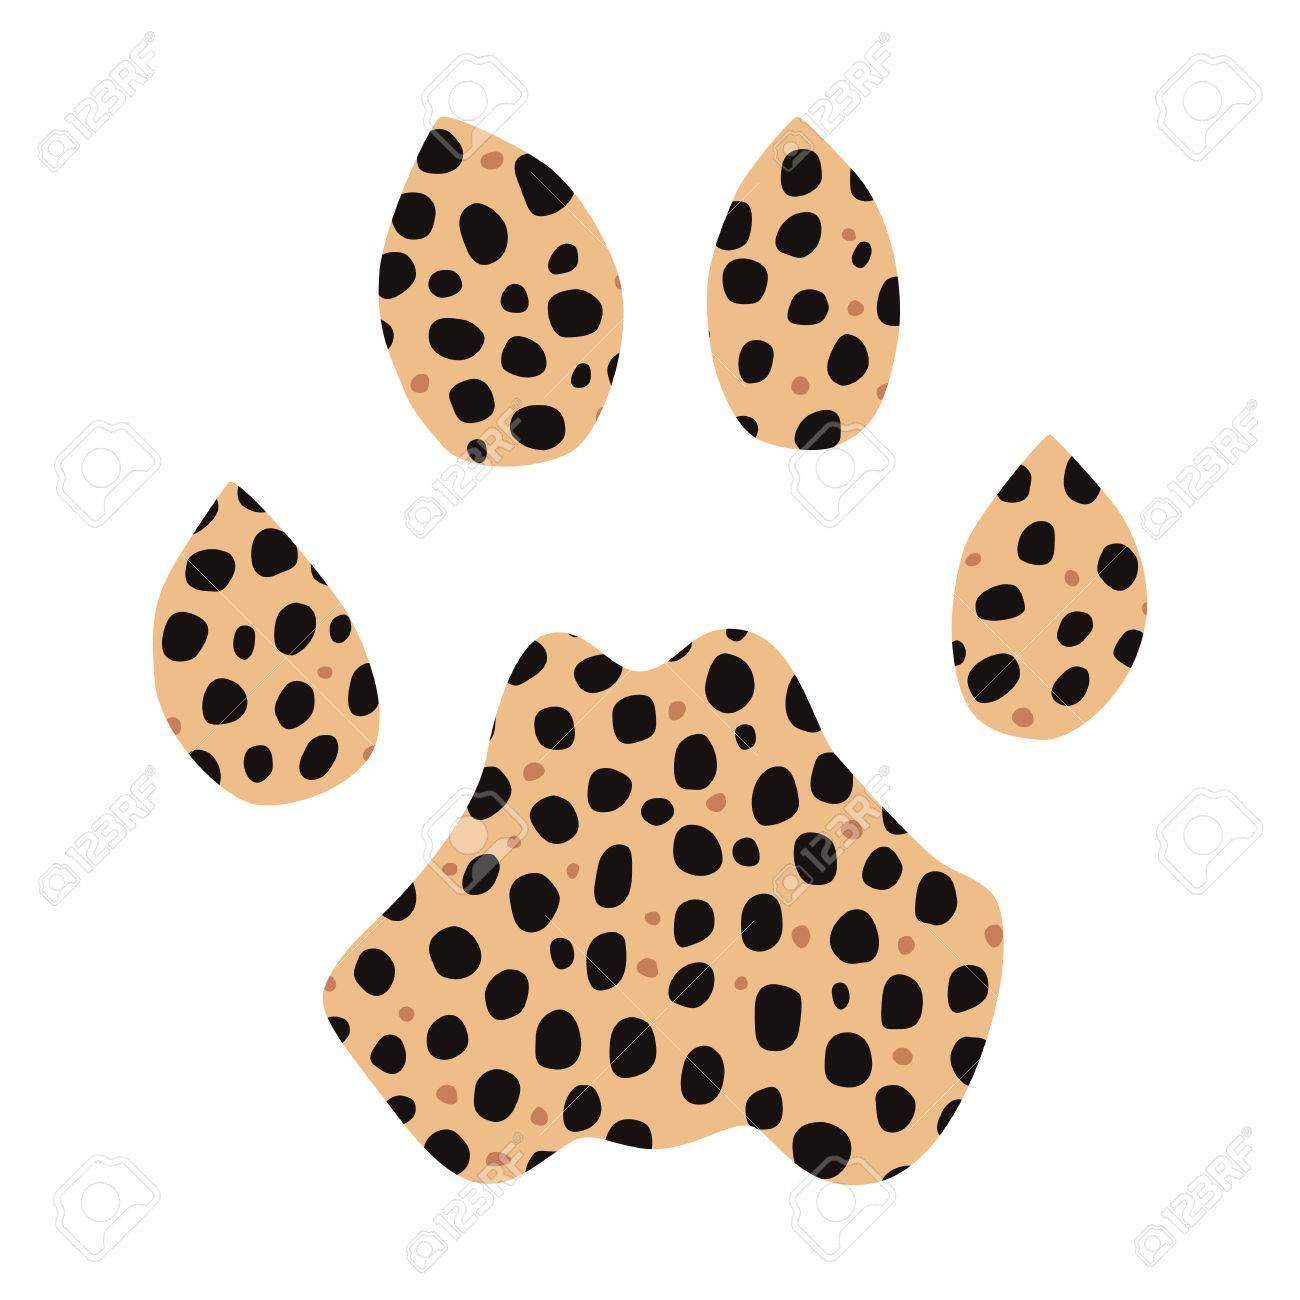 isolated footprint of cheetah with skin print on white background rh 123rf com